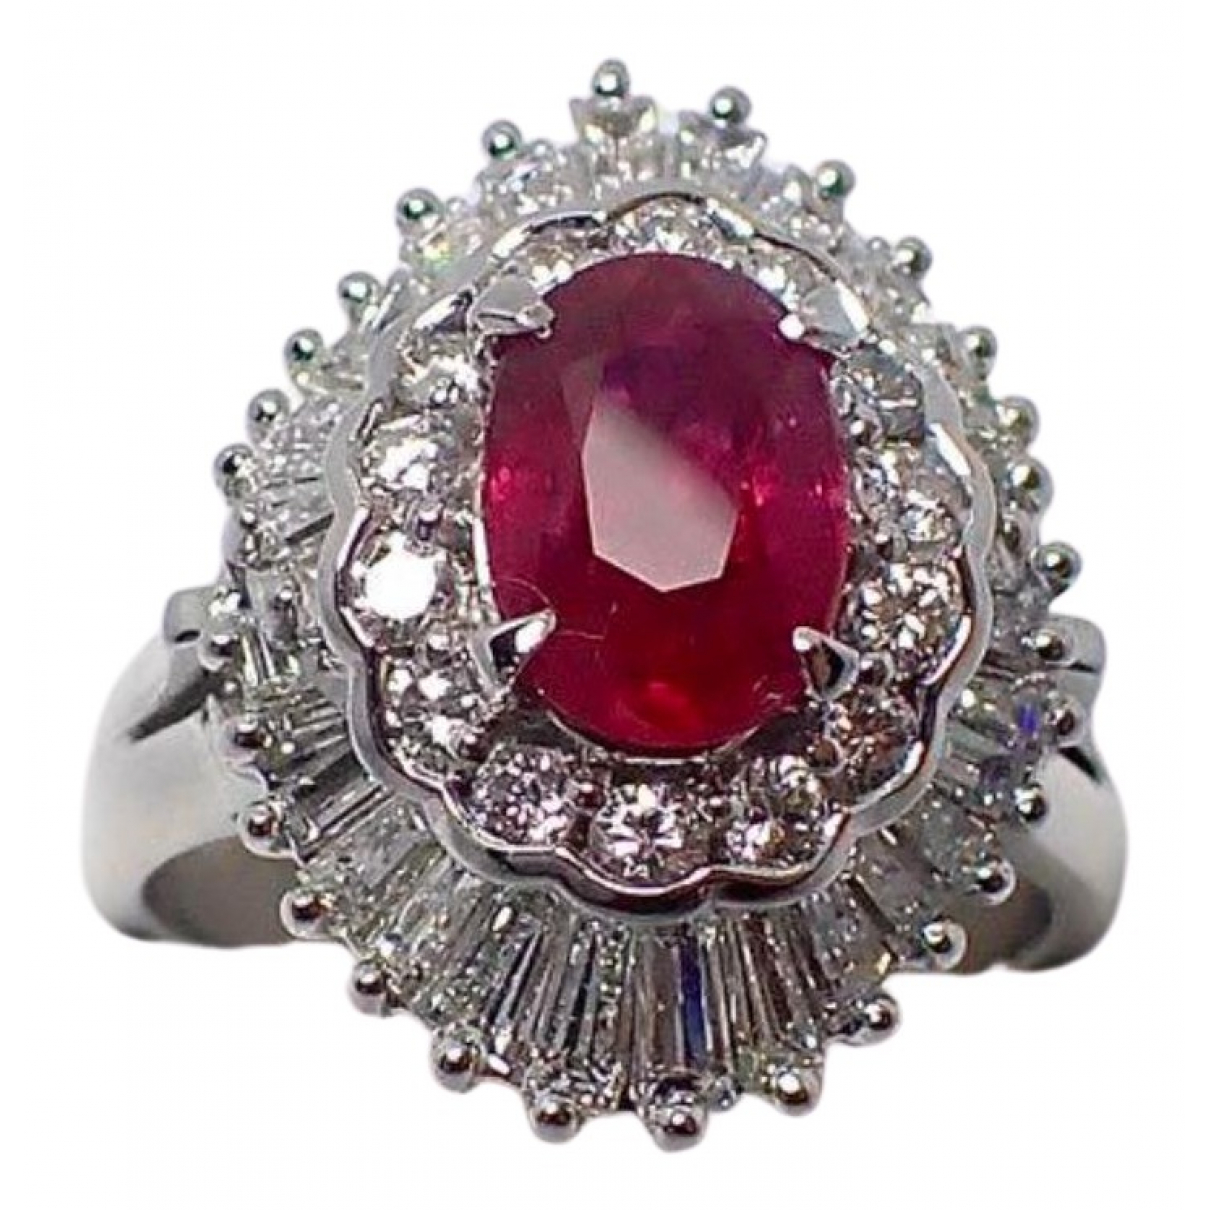 Non Signe / Unsigned Rubis Ring in Platin